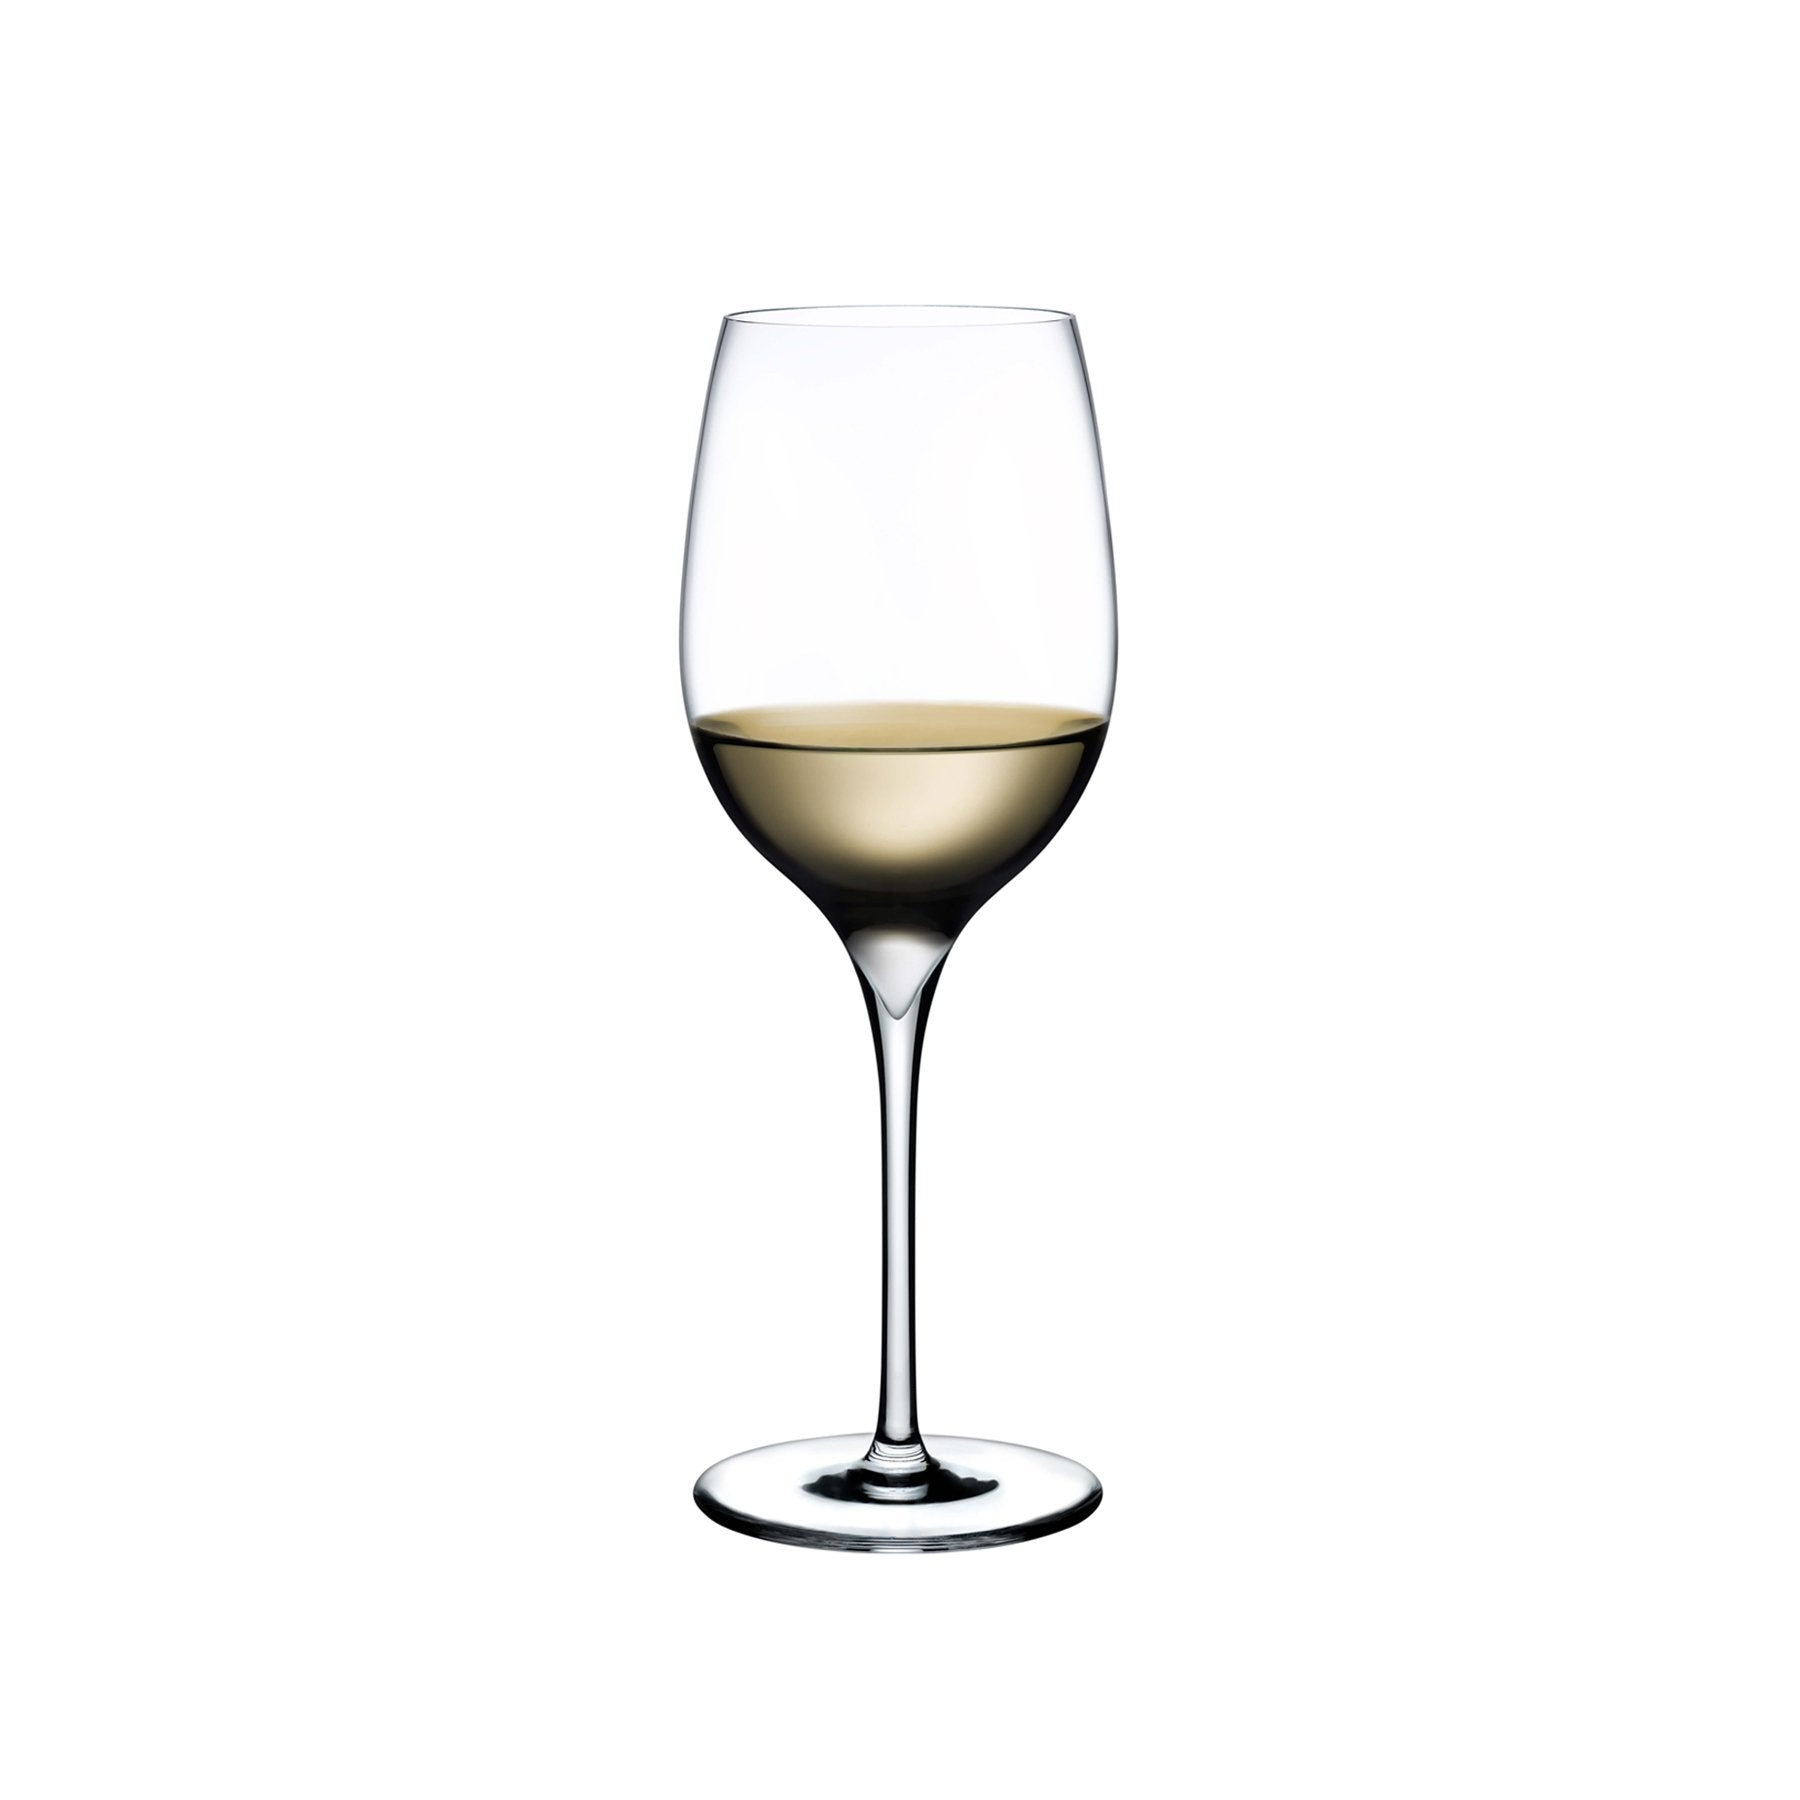 Nude Glass Dimple Aromatic White Wine Glass, Set of 2 | Goop